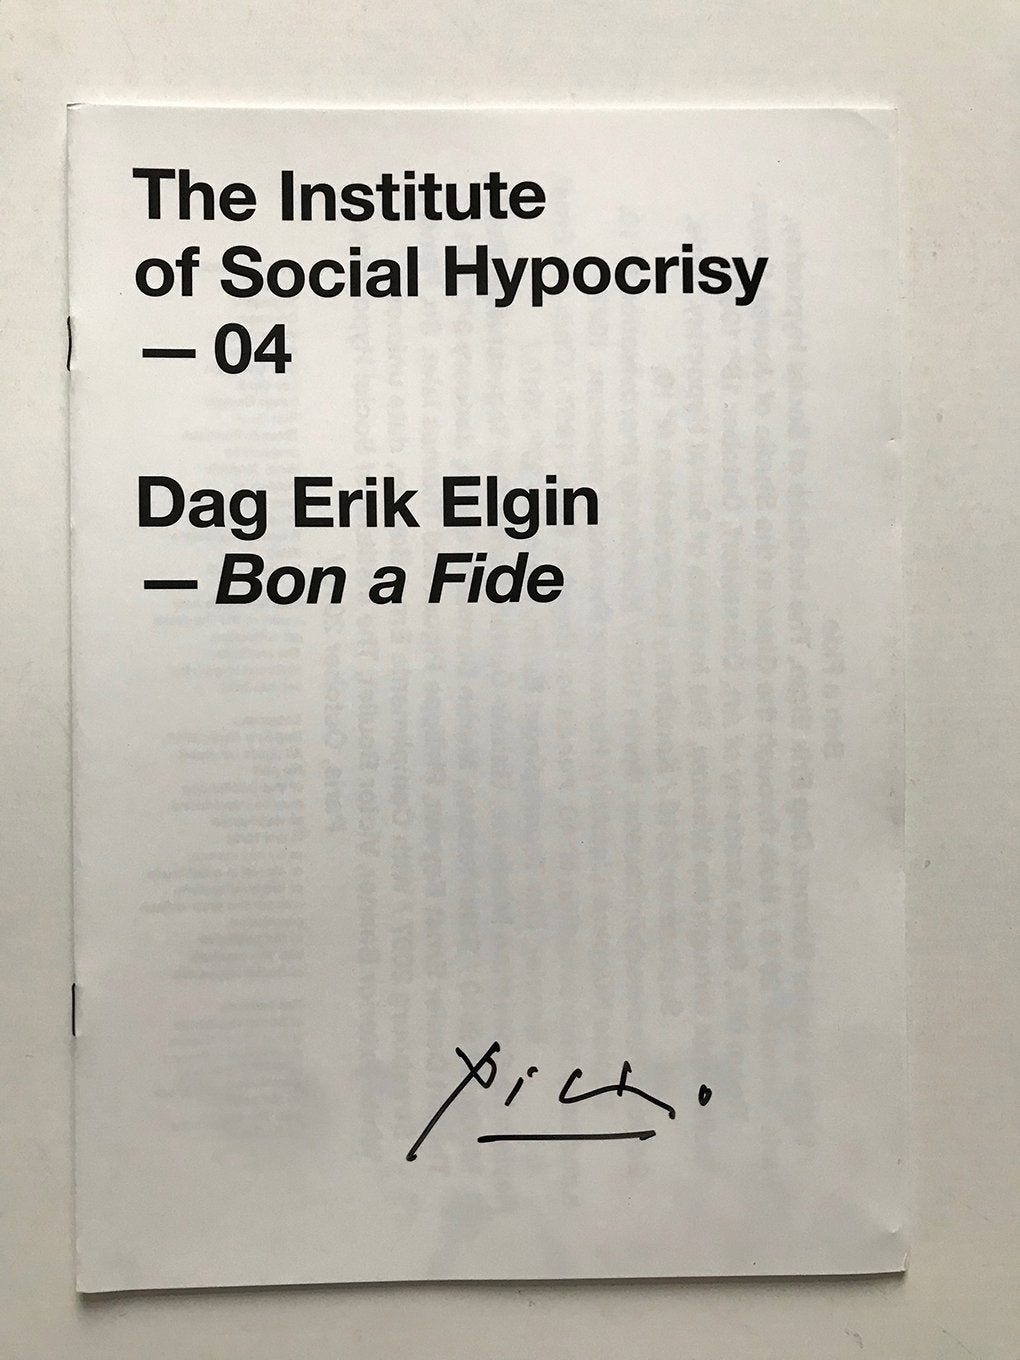 Dag Erik Elgin - Fanzine produced by The Institute of Social Hypocrisy, signed 'Picasso'